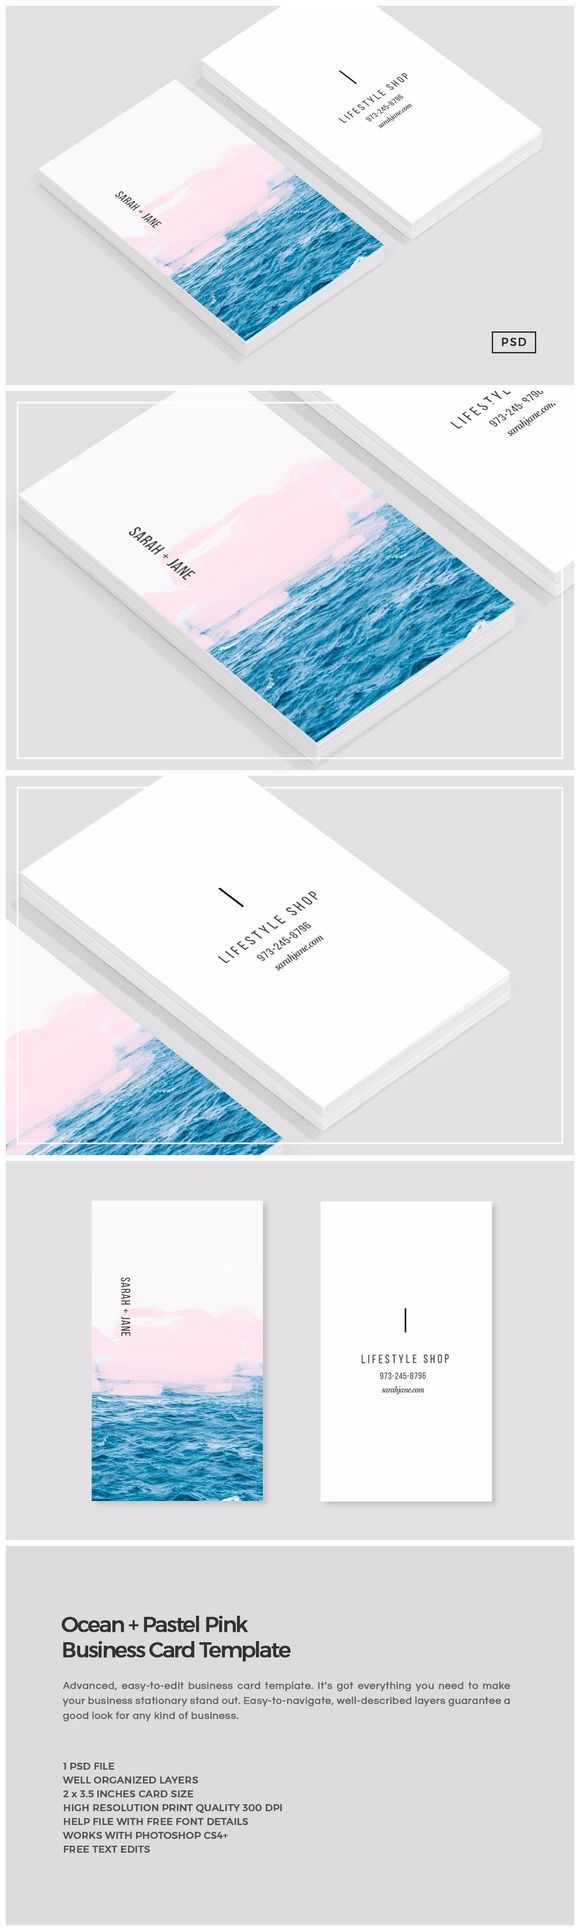 Ocean + Pink Business Card Template by Design Co. on Creative Market (scheduled ...